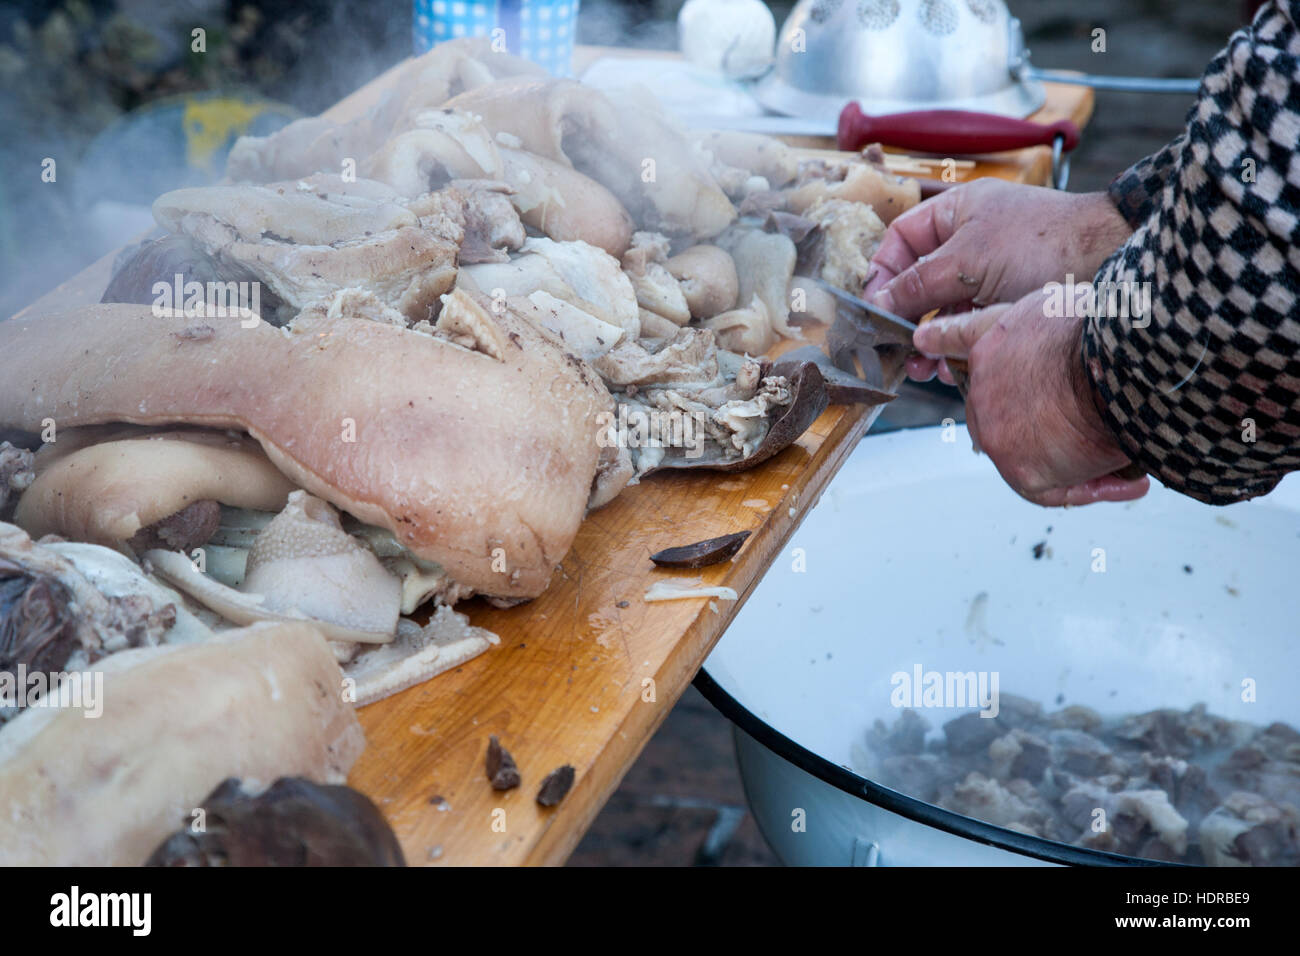 Traditional pig killing in Moravia, Czech Reoublic - Stock Image